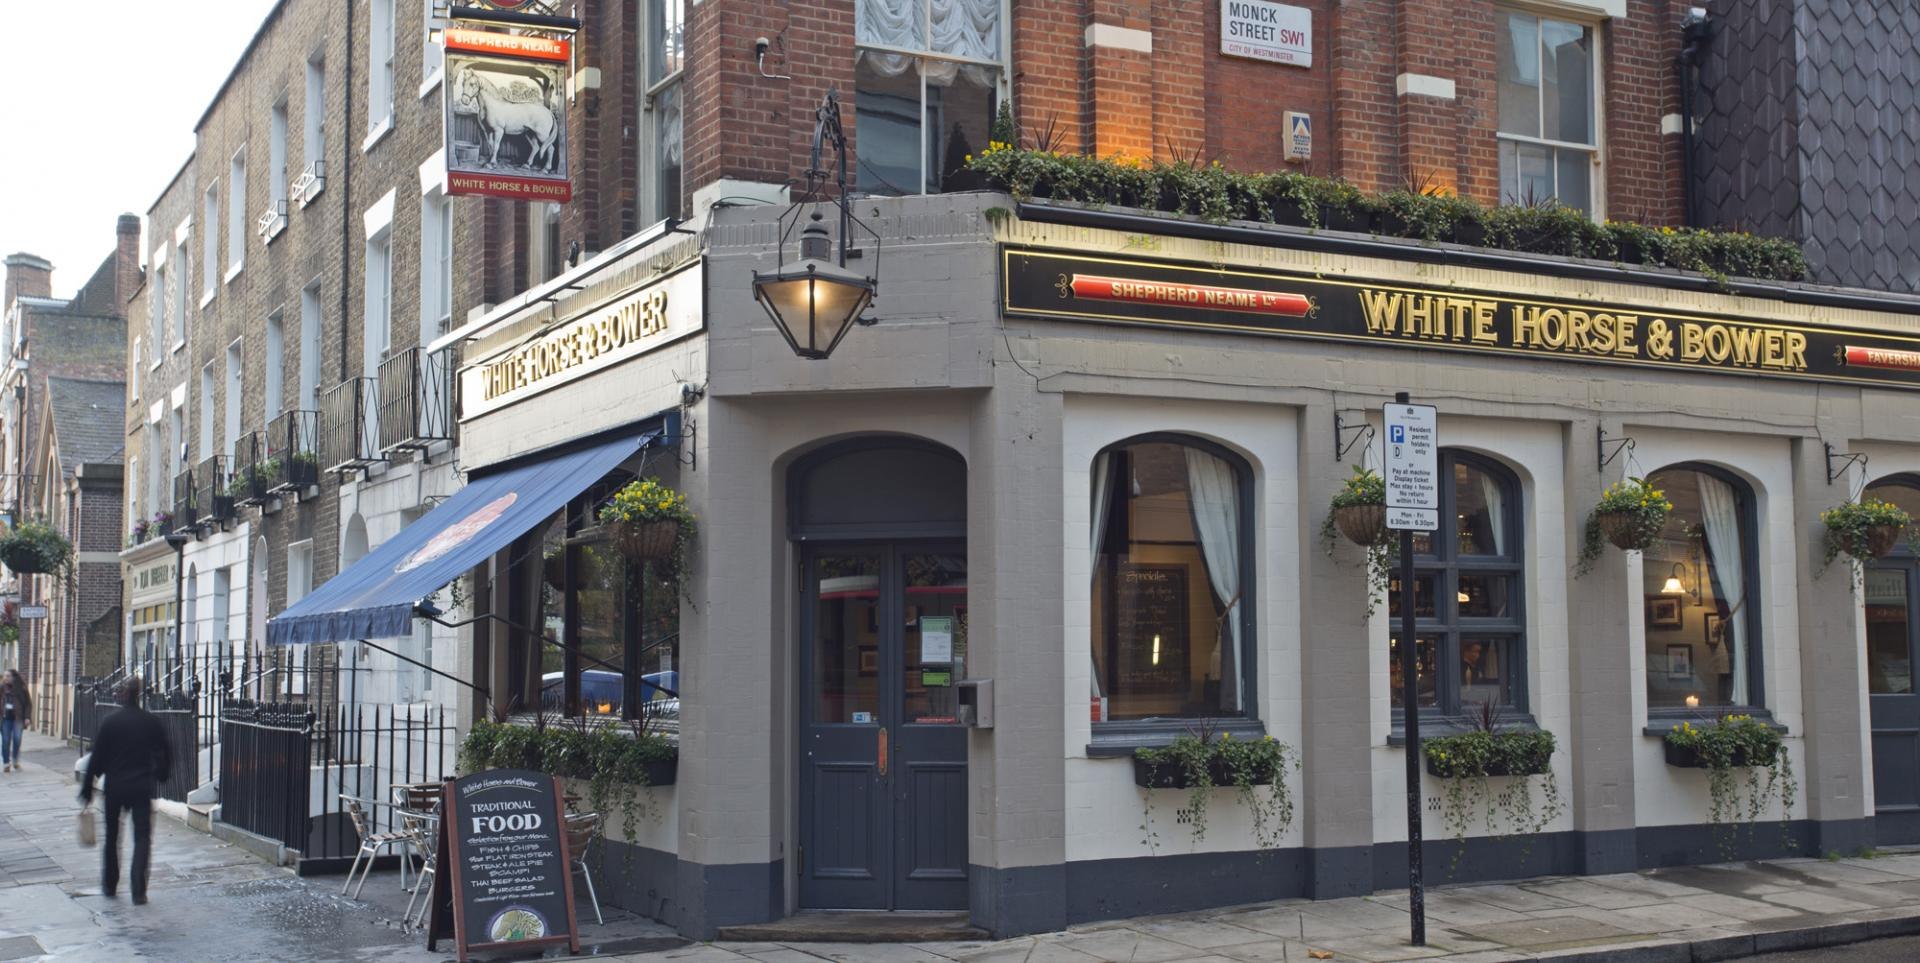 White Horse & Bower London